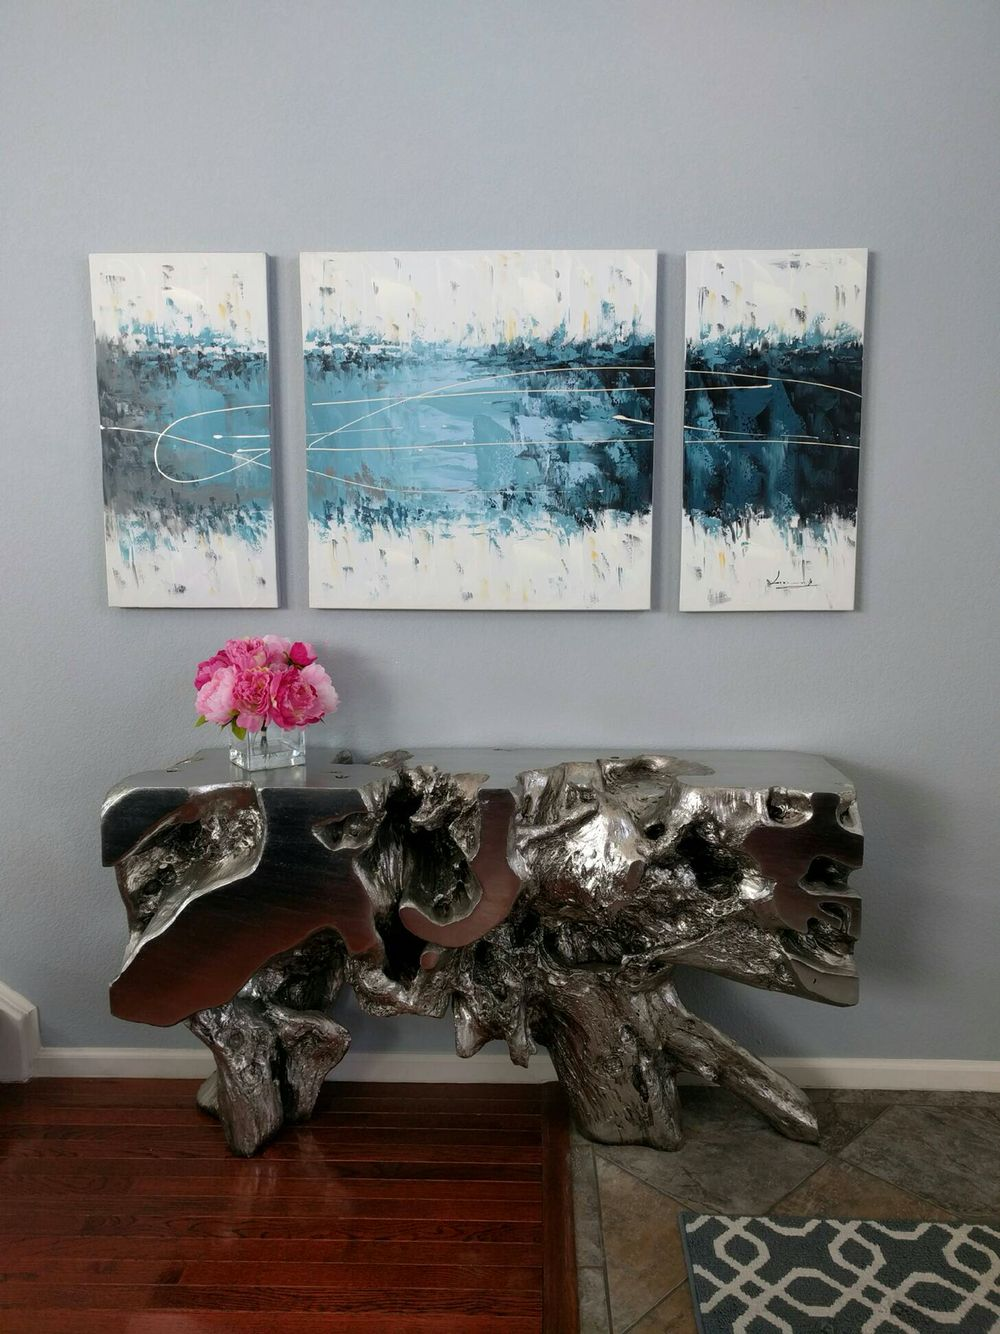 Z Gallerie Sequoia Console Table In Silver, Peony Flowers, Abstract  Painting | House Design Ideas | Pinterest | Peony Flower, Console Tables  And Consoles